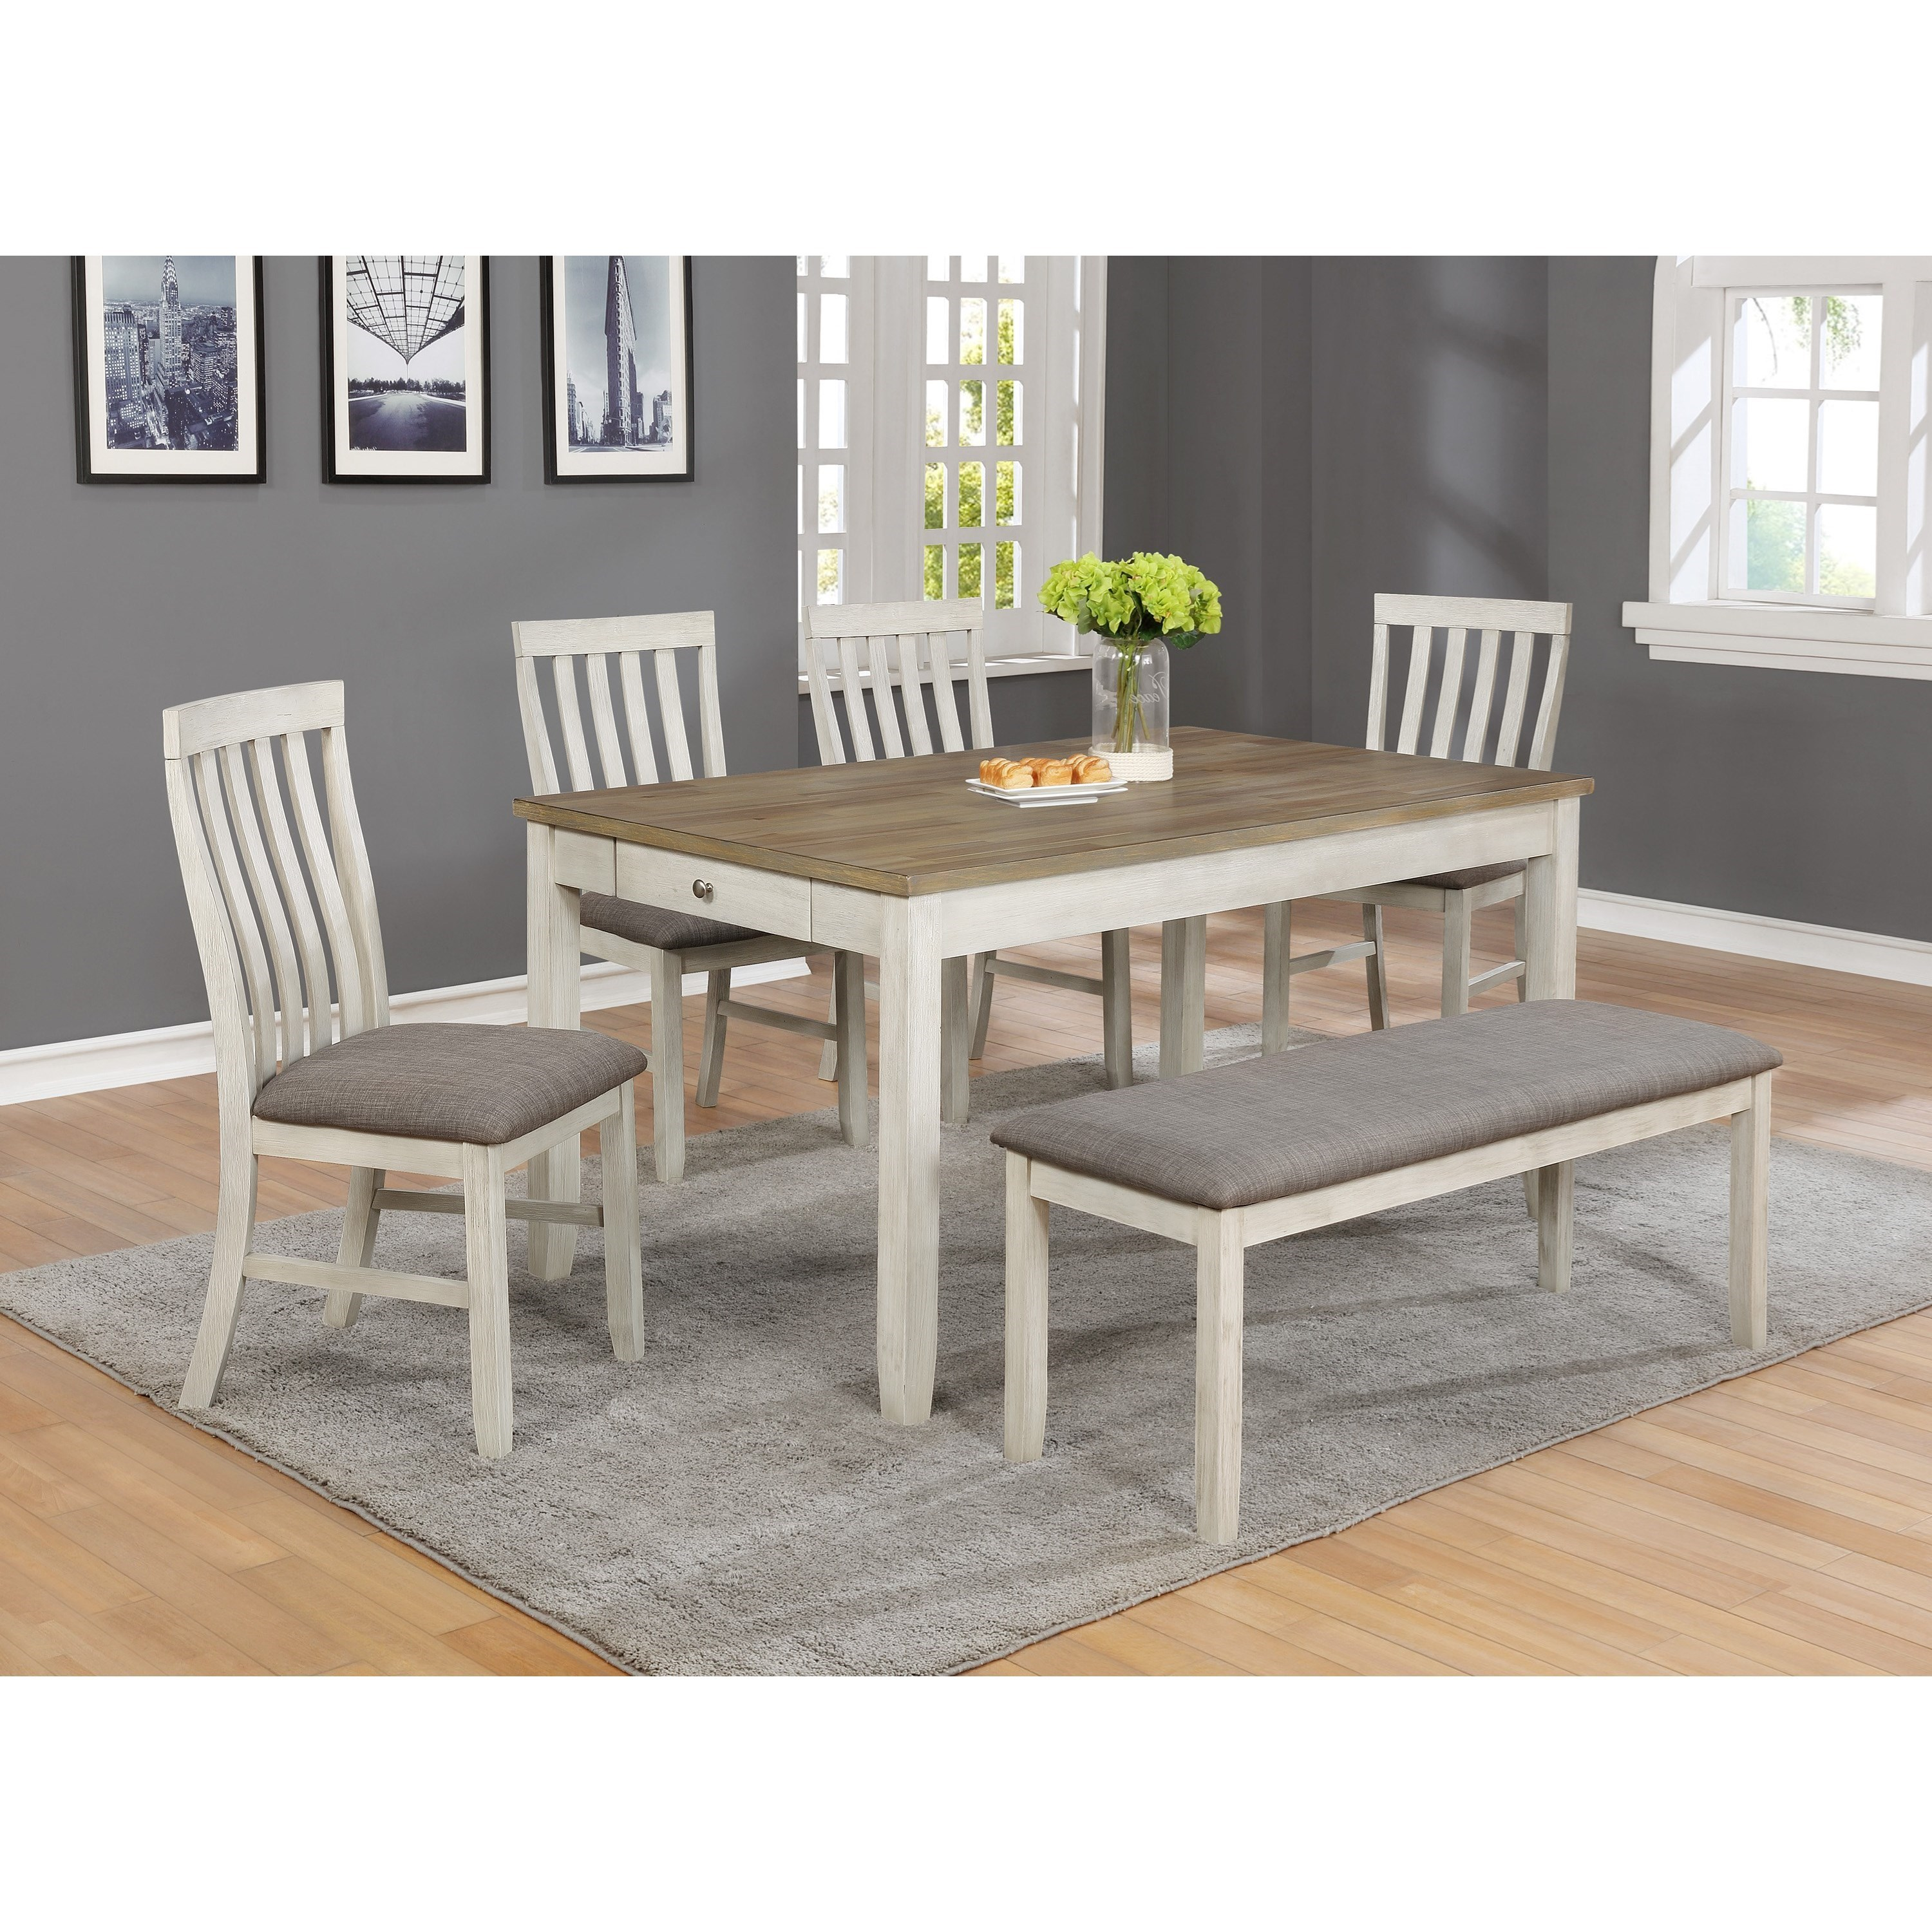 Image of: Crown Mark Nina Table Chair Set With Bench Pedigo Furniture Table Chair Set With Bench